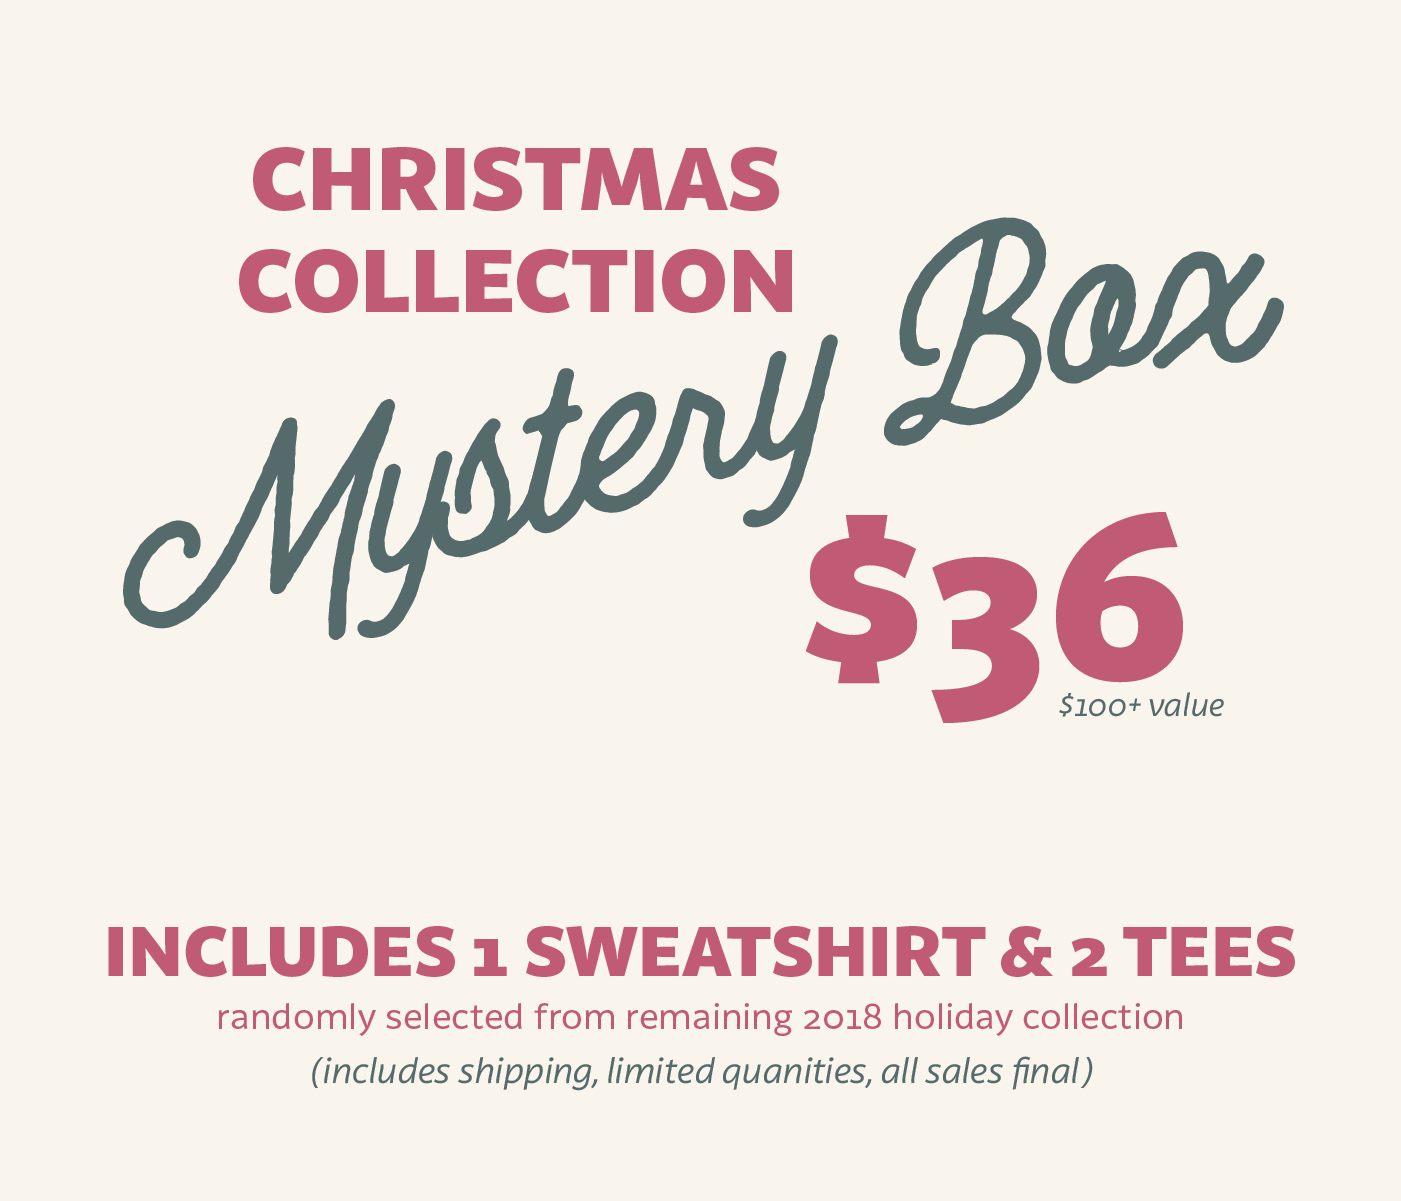 Christmas Collection Mystery Box